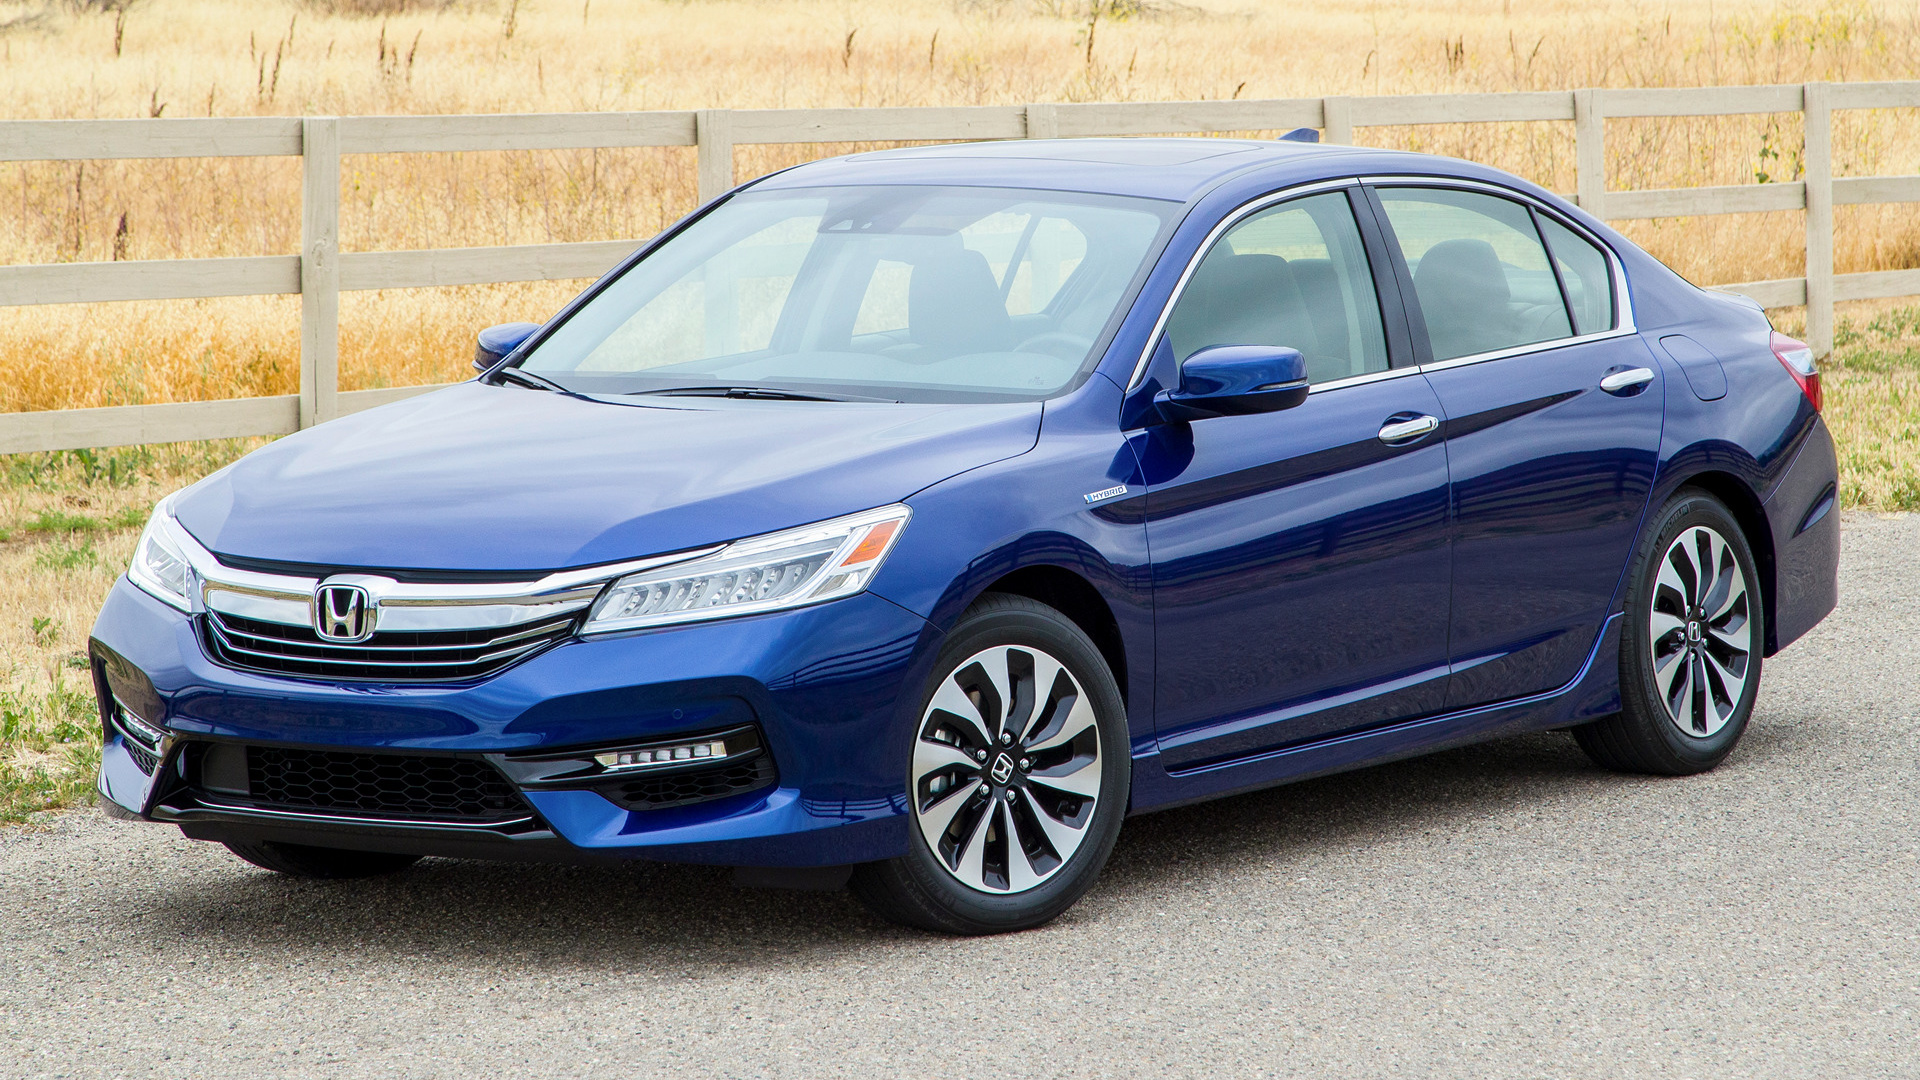 honda accord hybrid touring 2017 us wallpapers and hd images   car pixel